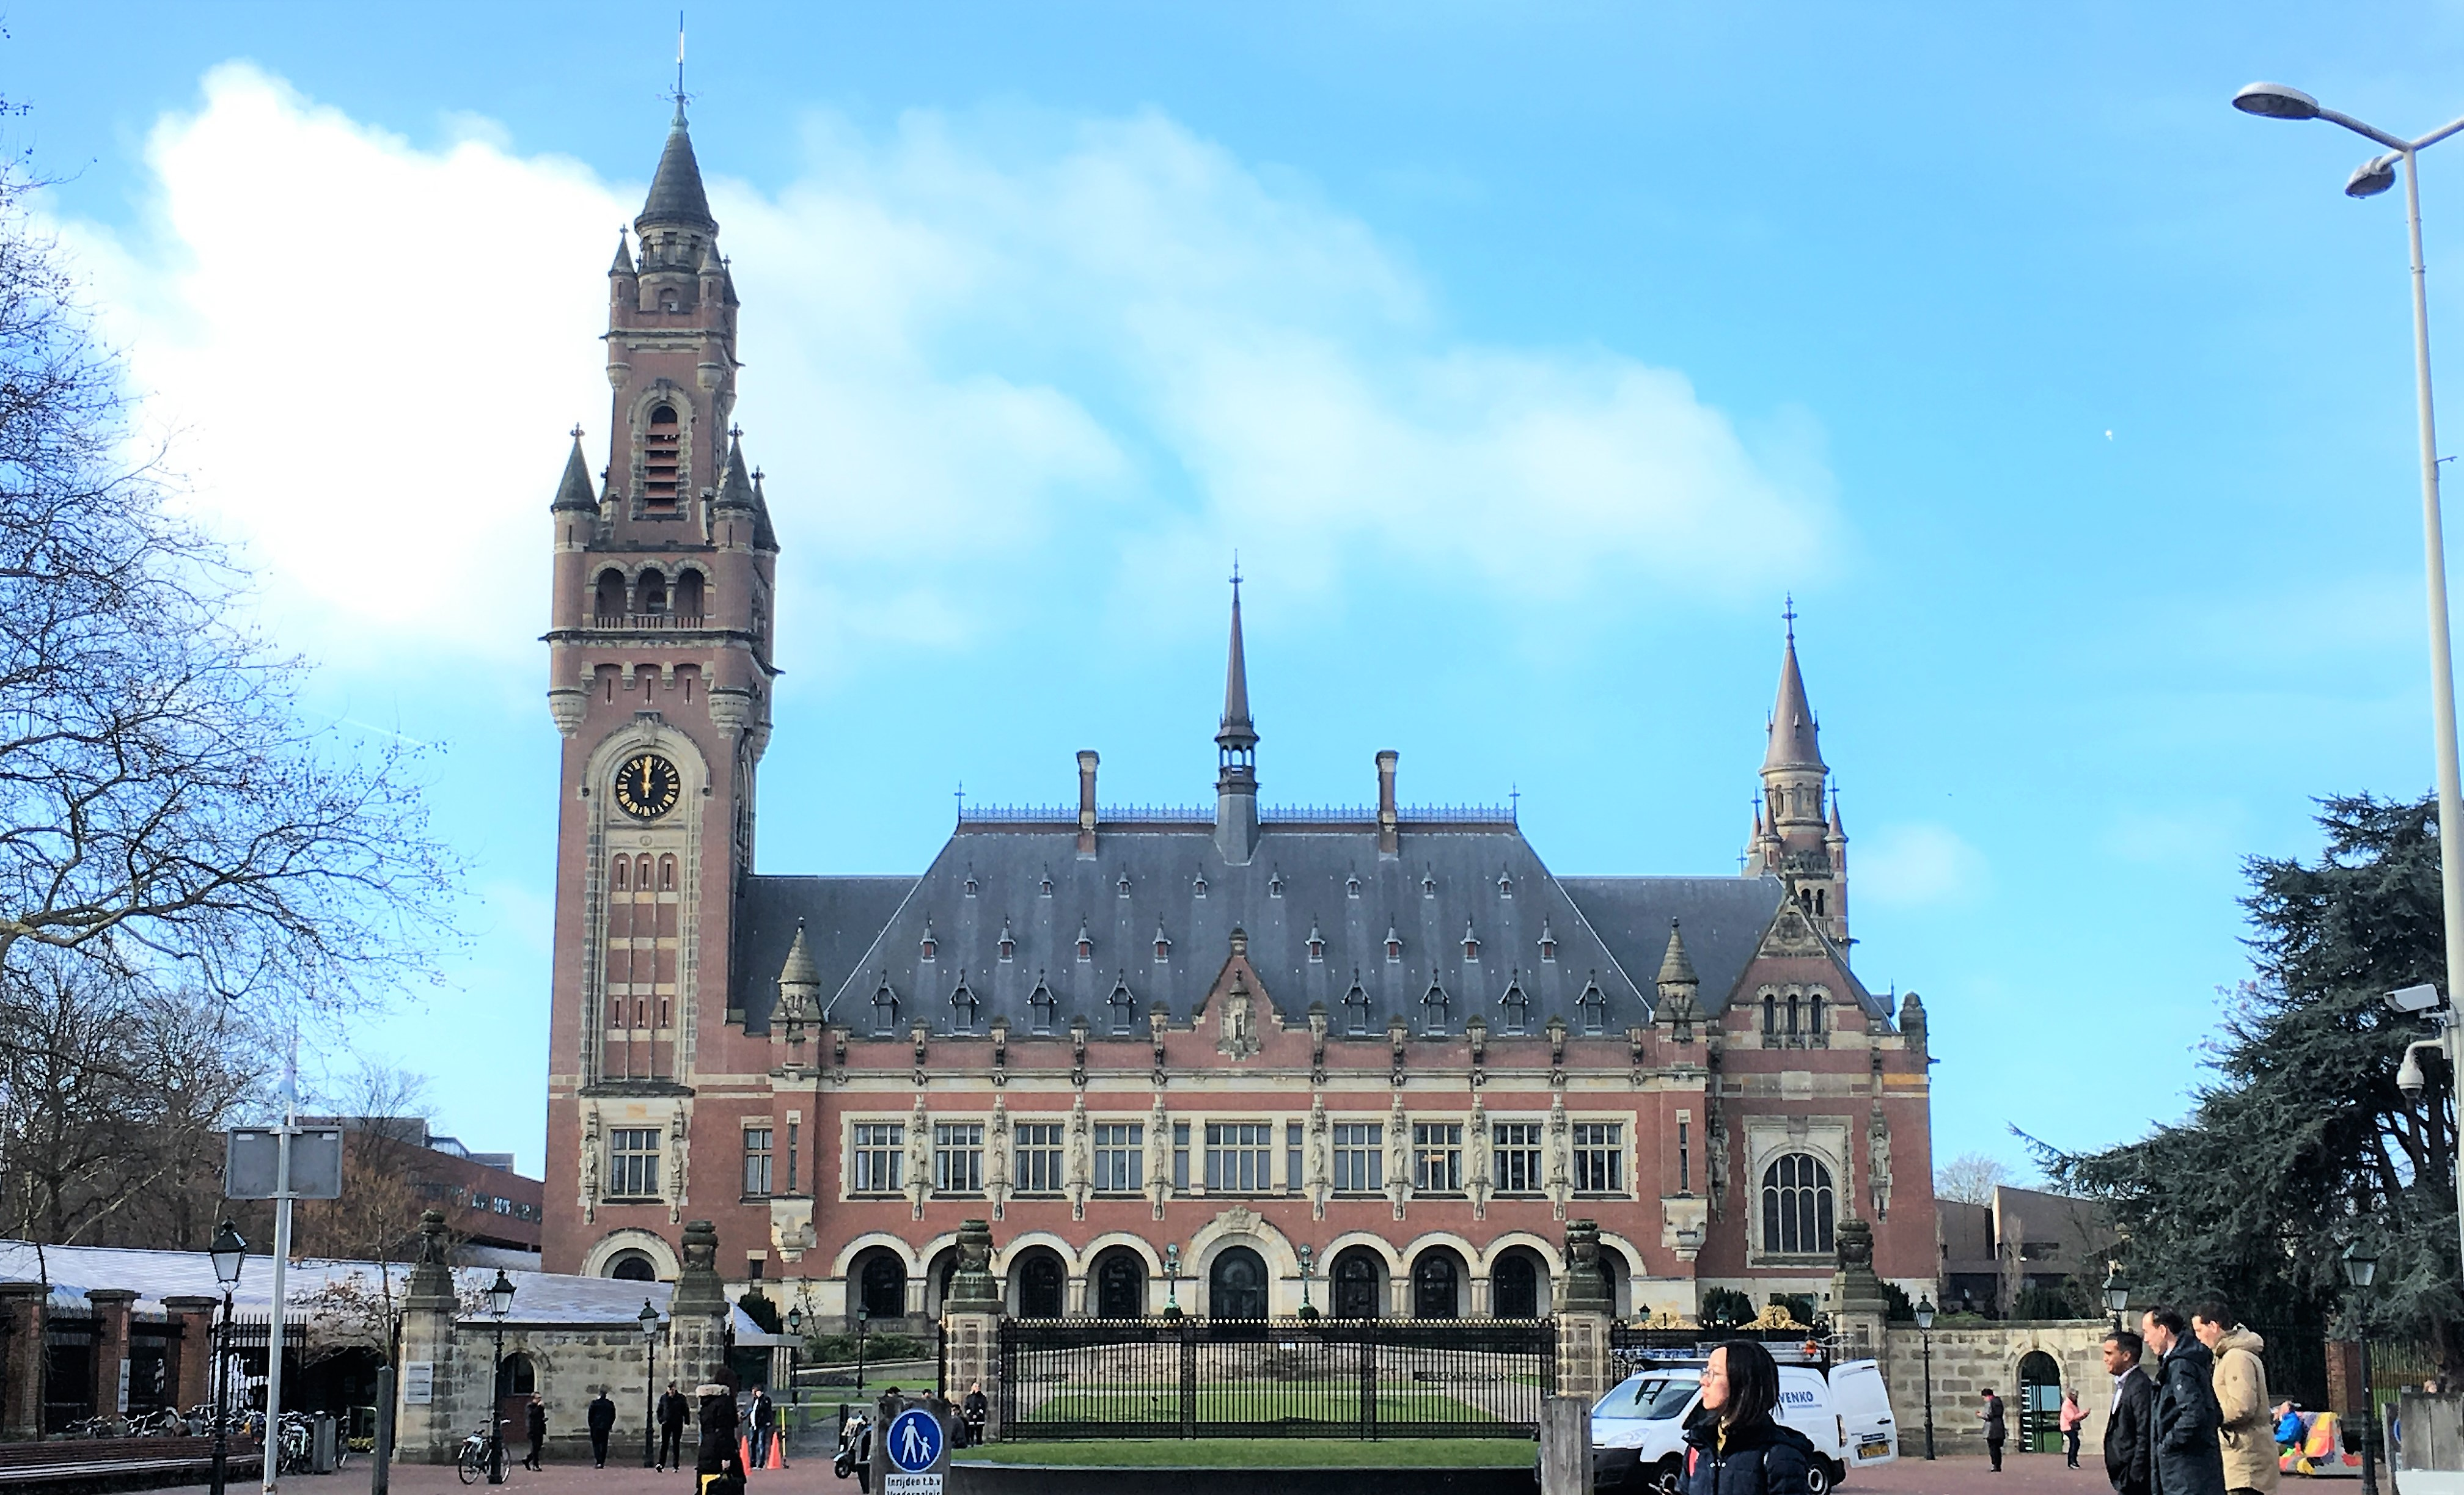 My Favorite Way to Spend A Day in The Hague